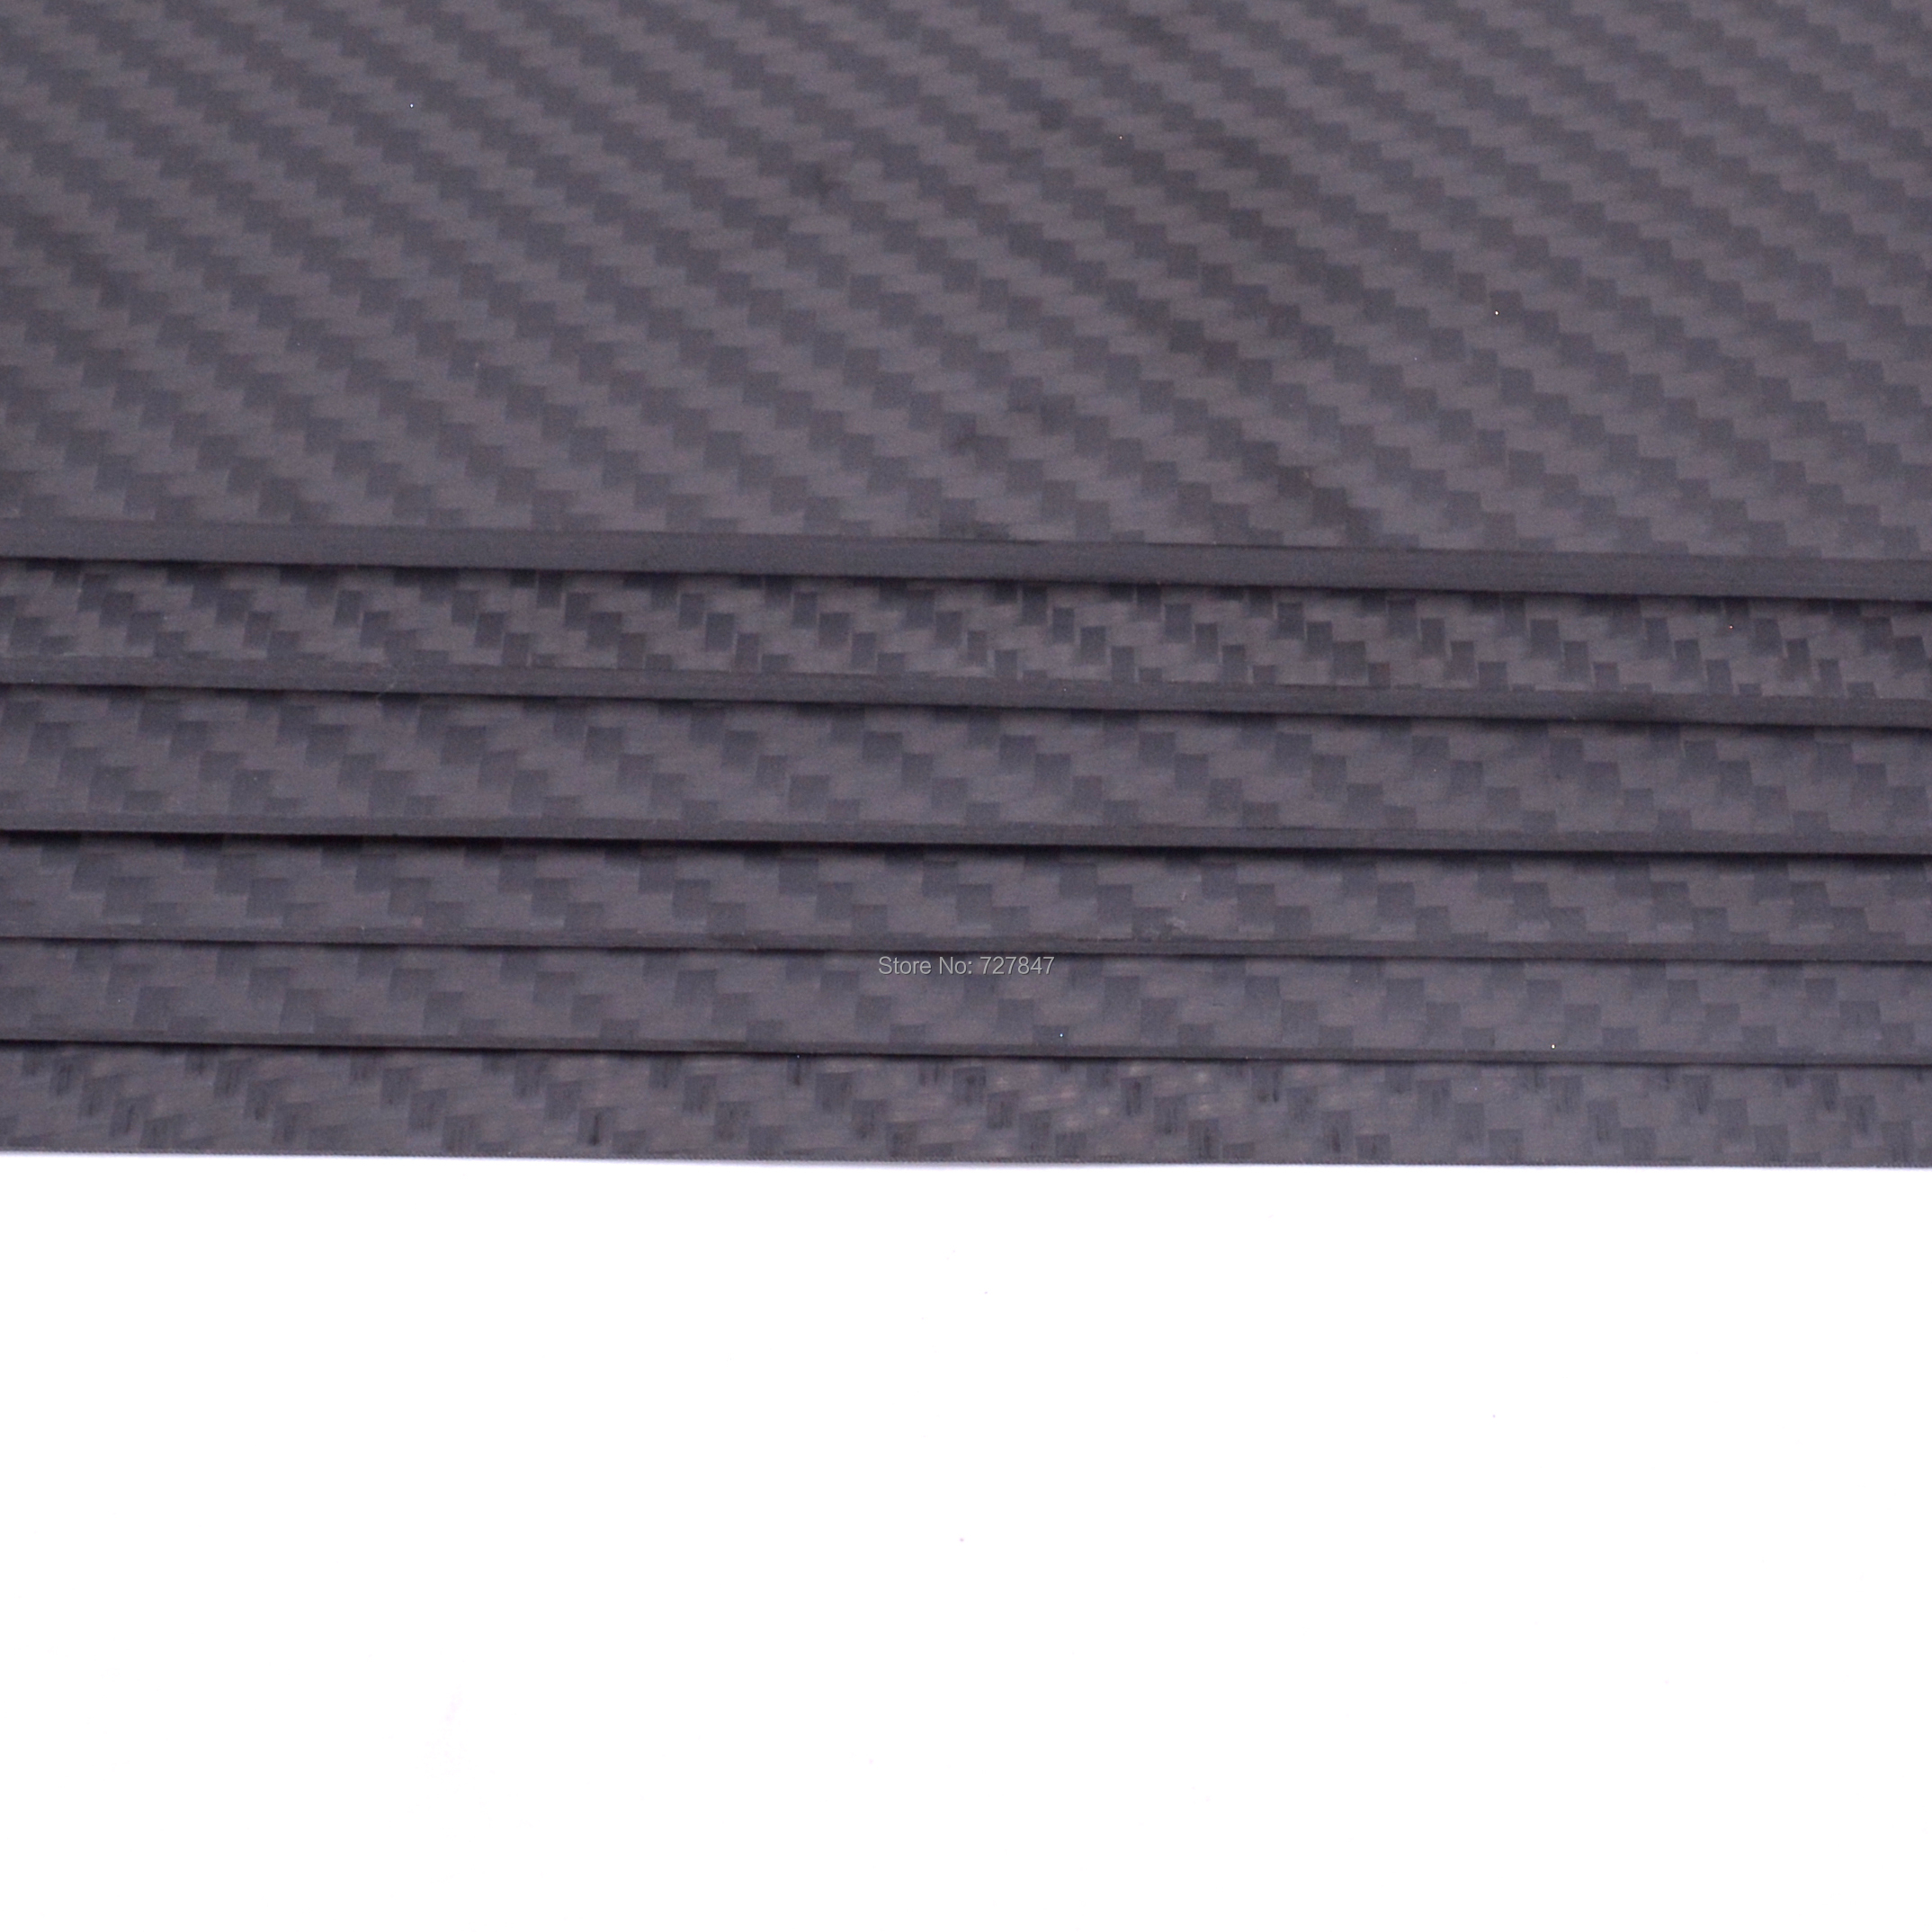 Image 3 - 400mm X 200mm Real Carbon Fiber Plate Panel Sheets 0.5mm 1mm 1.5mm 2mm 3mm 4mm 5mm thickness Composite Hardness Material-in Parts & Accessories from Toys & Hobbies